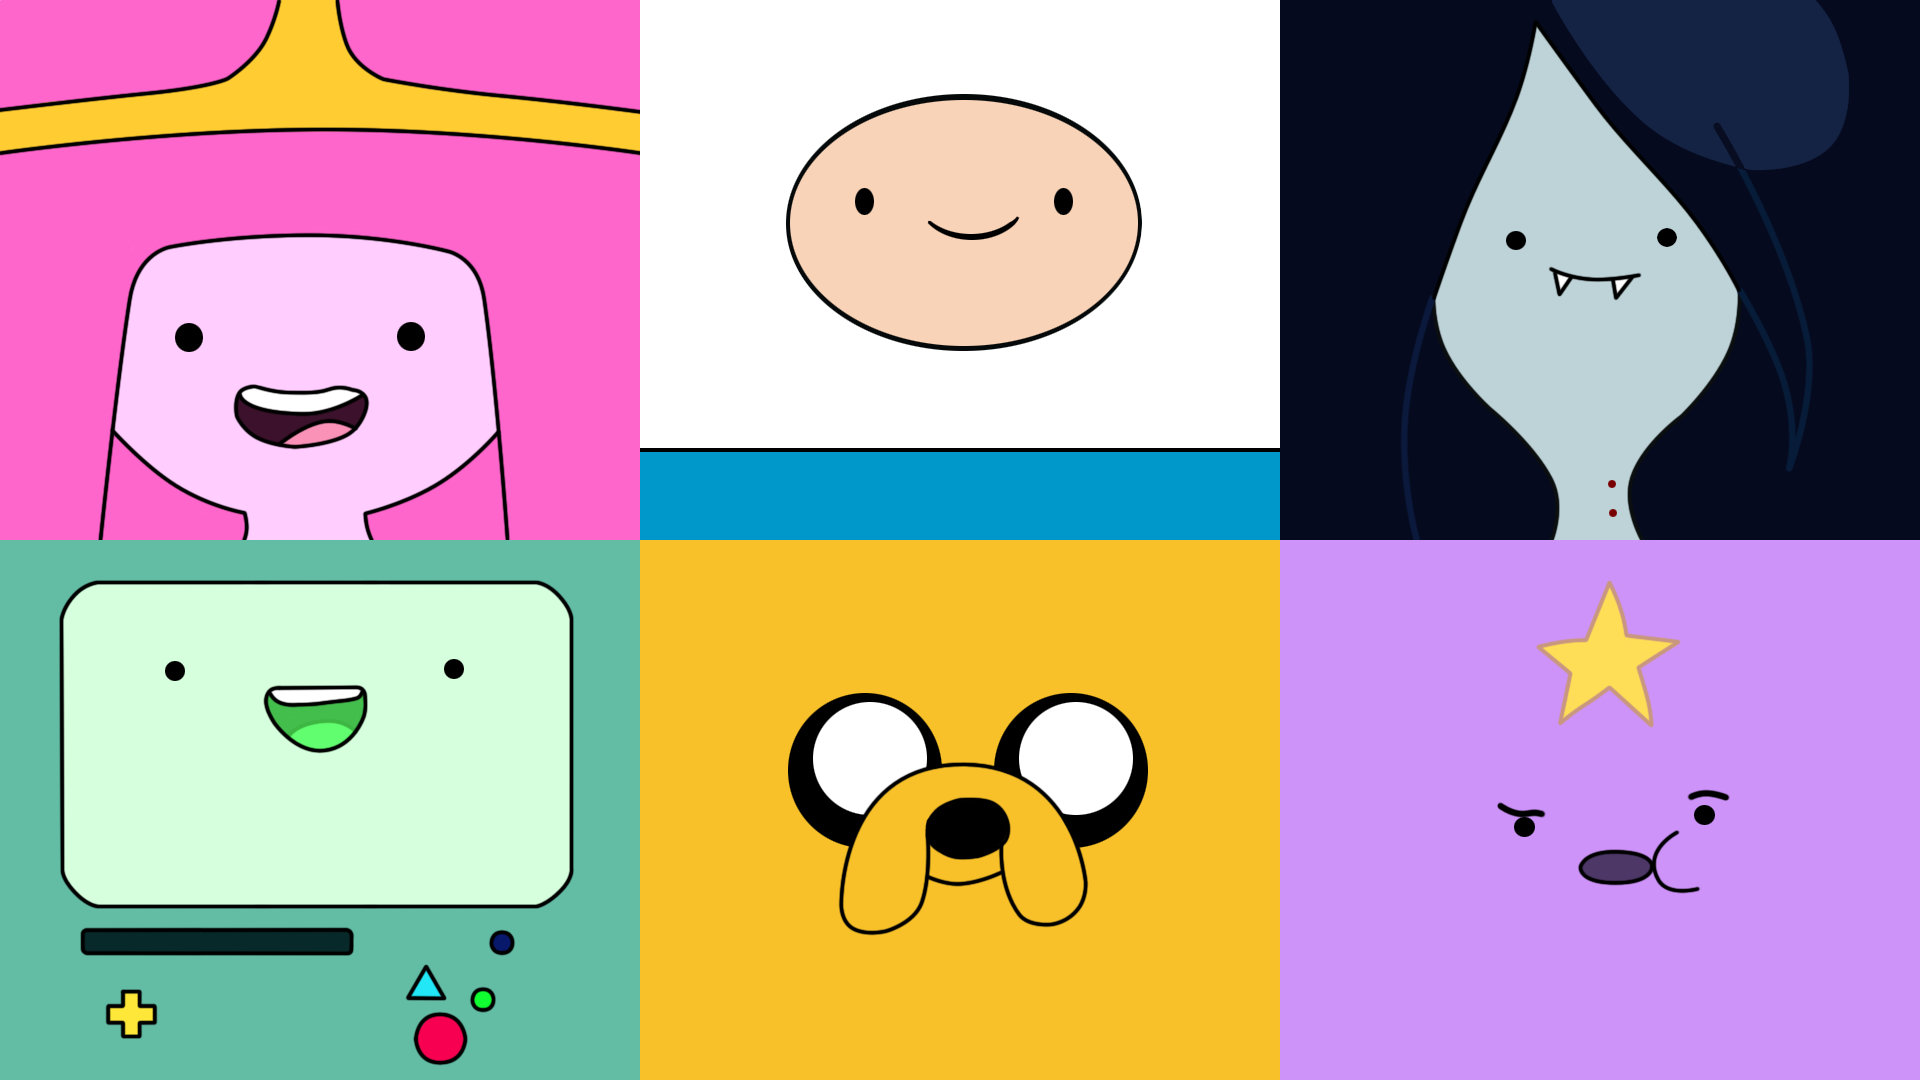 Download Free Wallpapers online in 2020 Adventure time